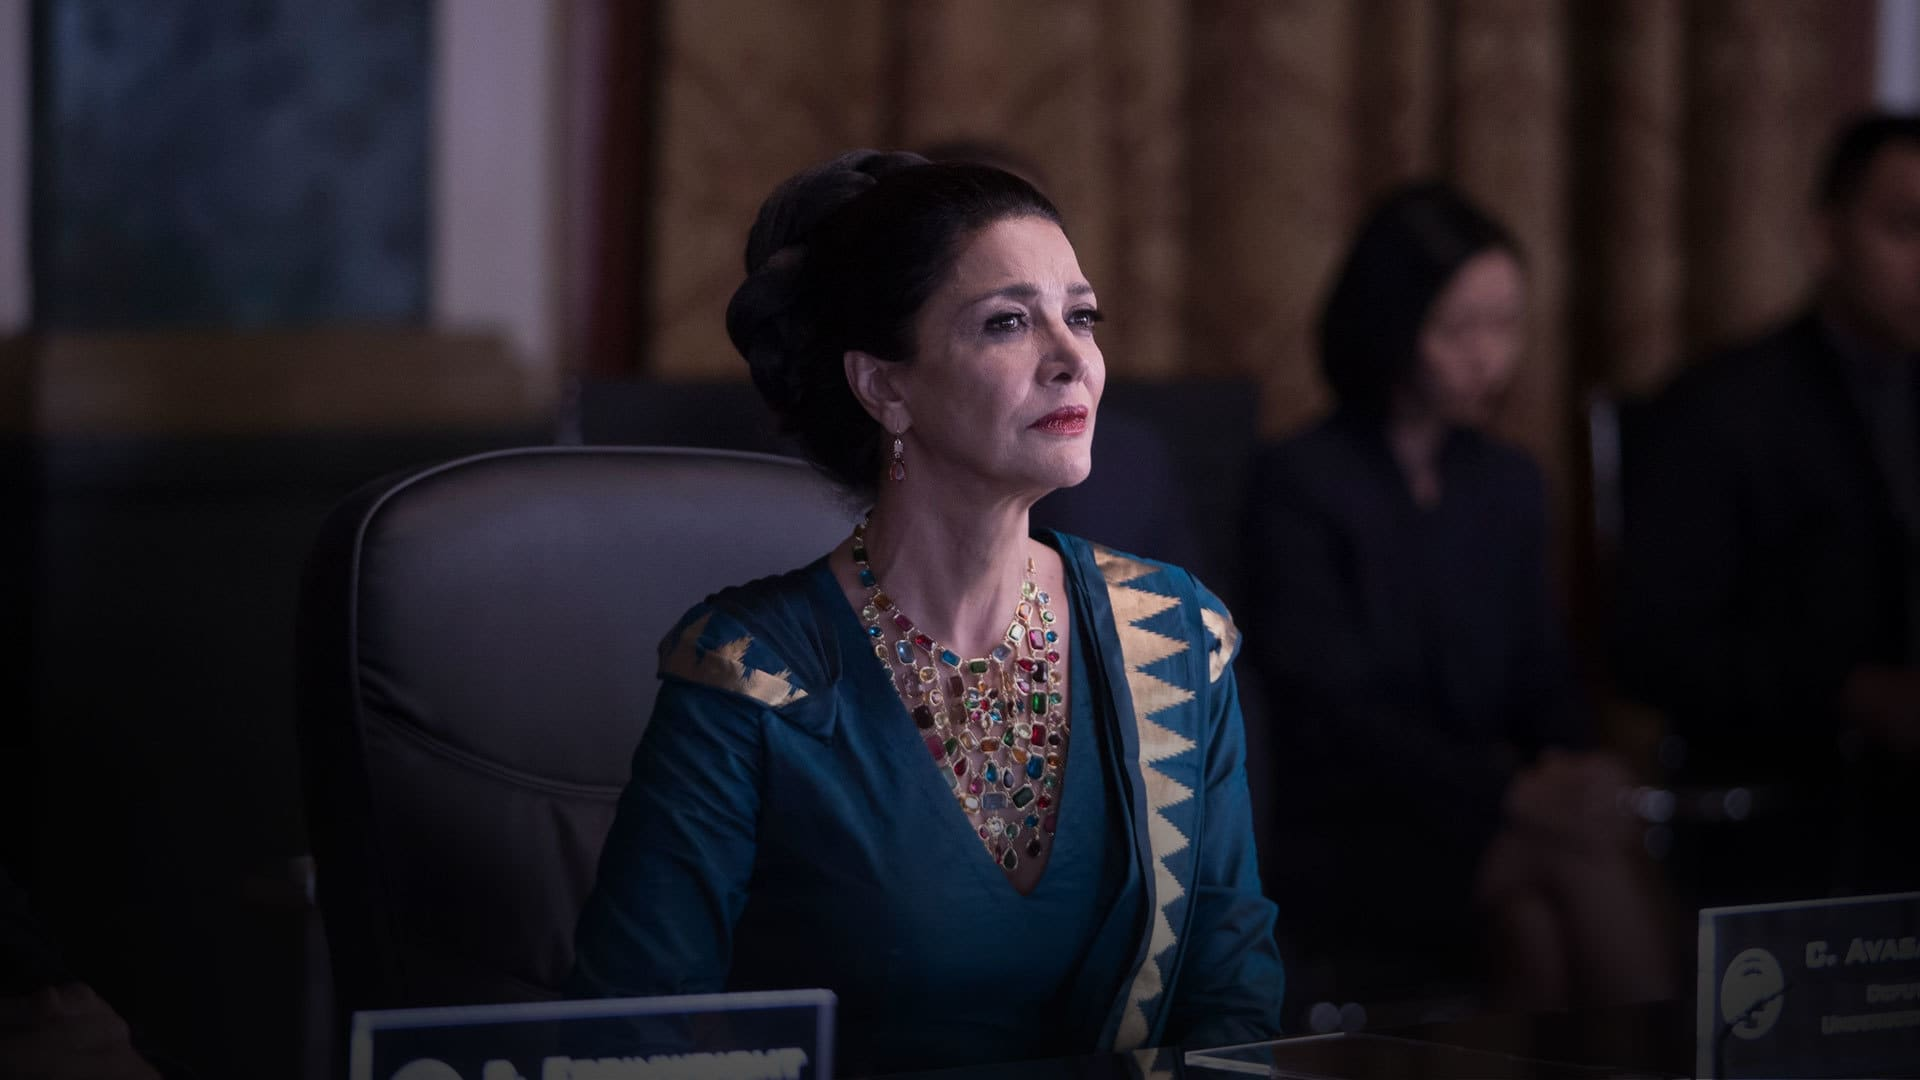 The Expanse Season 2 Episode 9